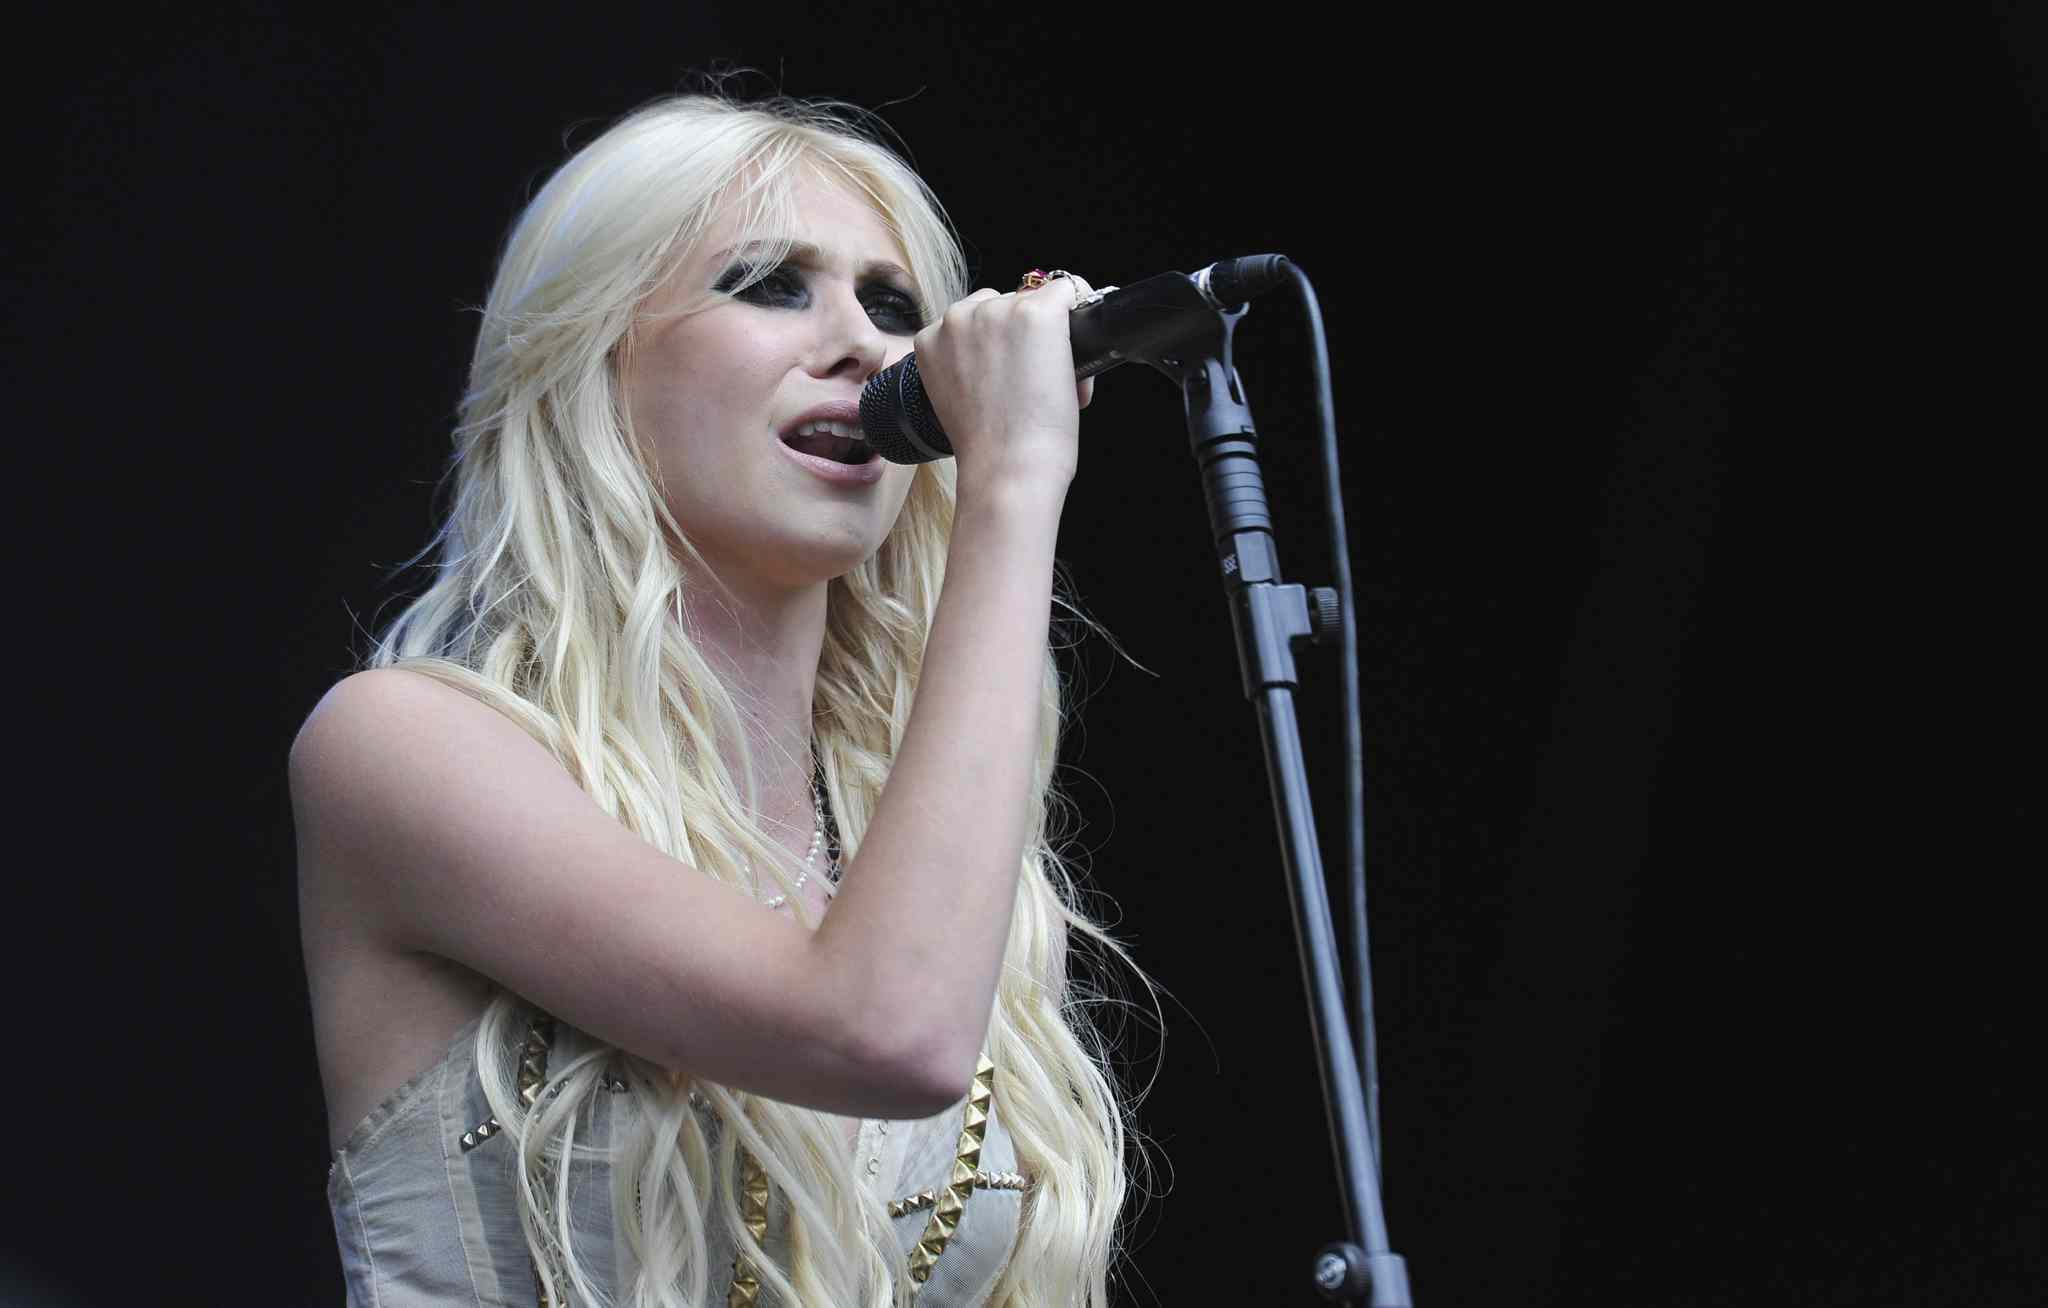 U.S singer Taylor Momsen of the Pretty Reckless performs at the 2010 V Music Festival in Chelmsford, Essex.